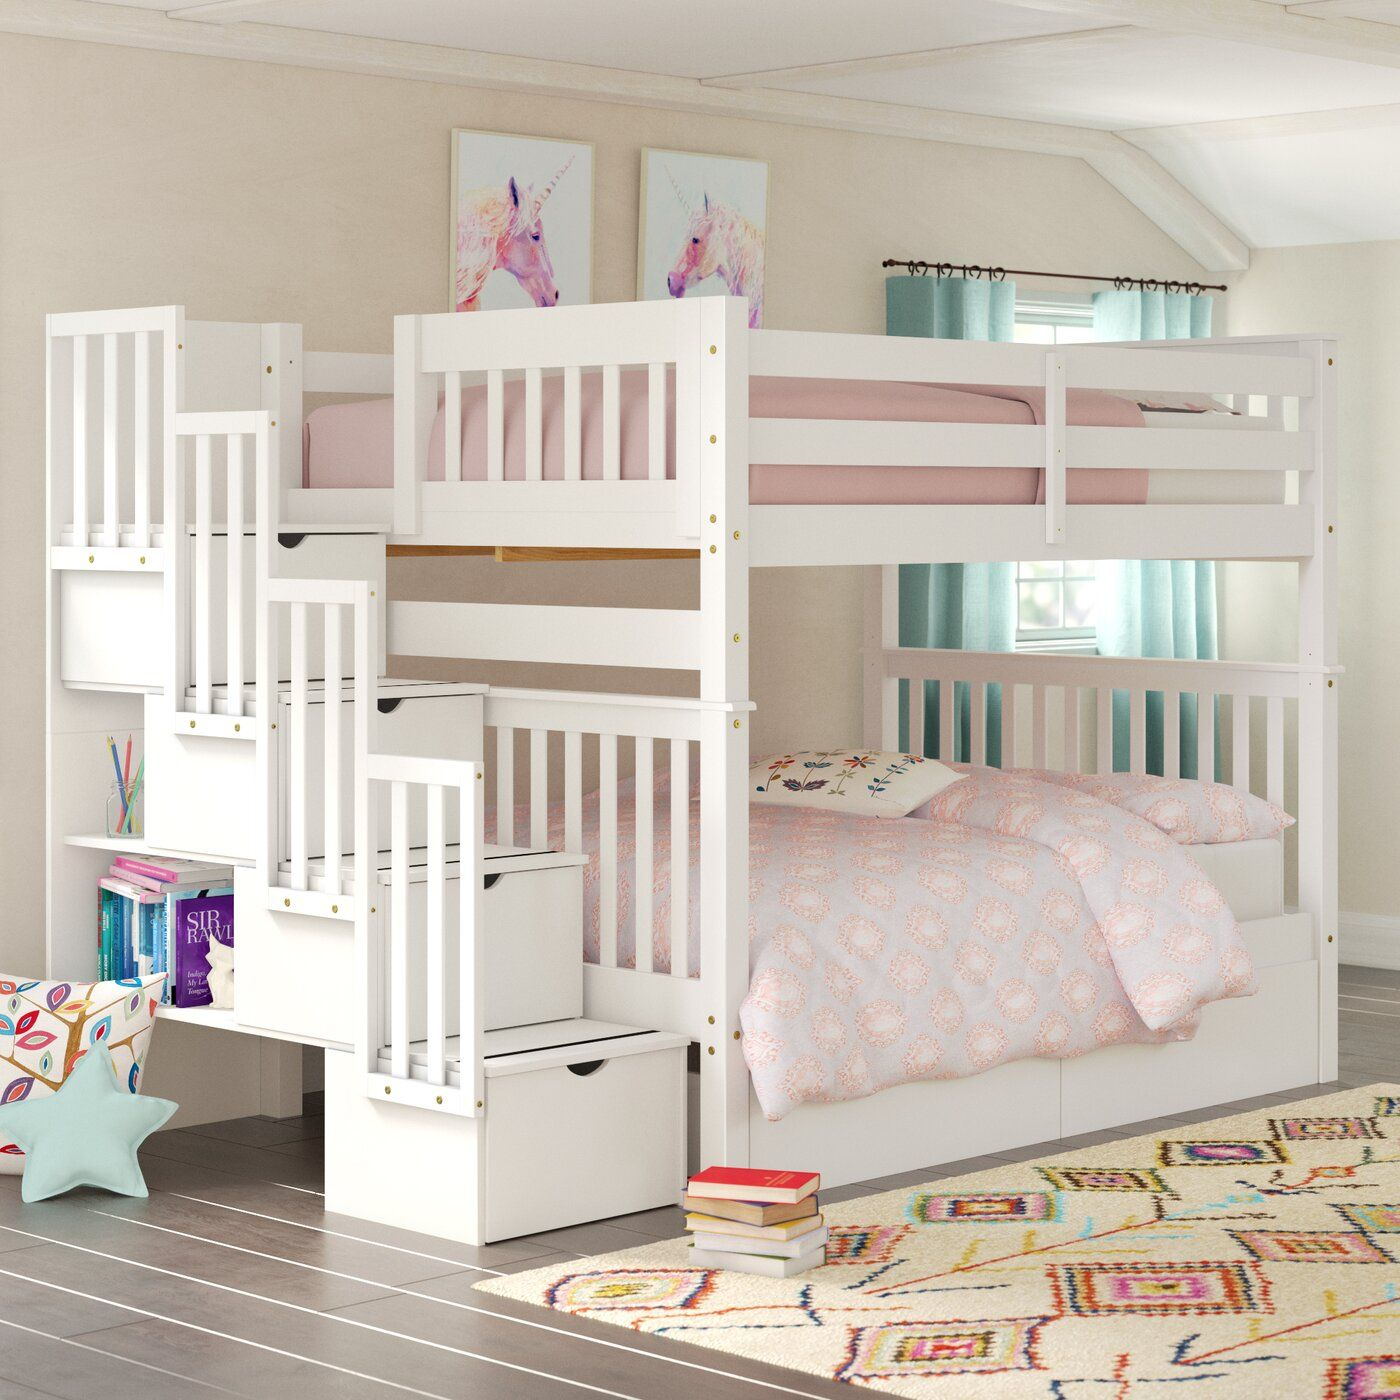 Tena Full Over Full Bunk Bed With Drawers Habitacion Para Bebes Varones Decoracion De Habitacion Juvenil Decoracion Dormitorio Nina